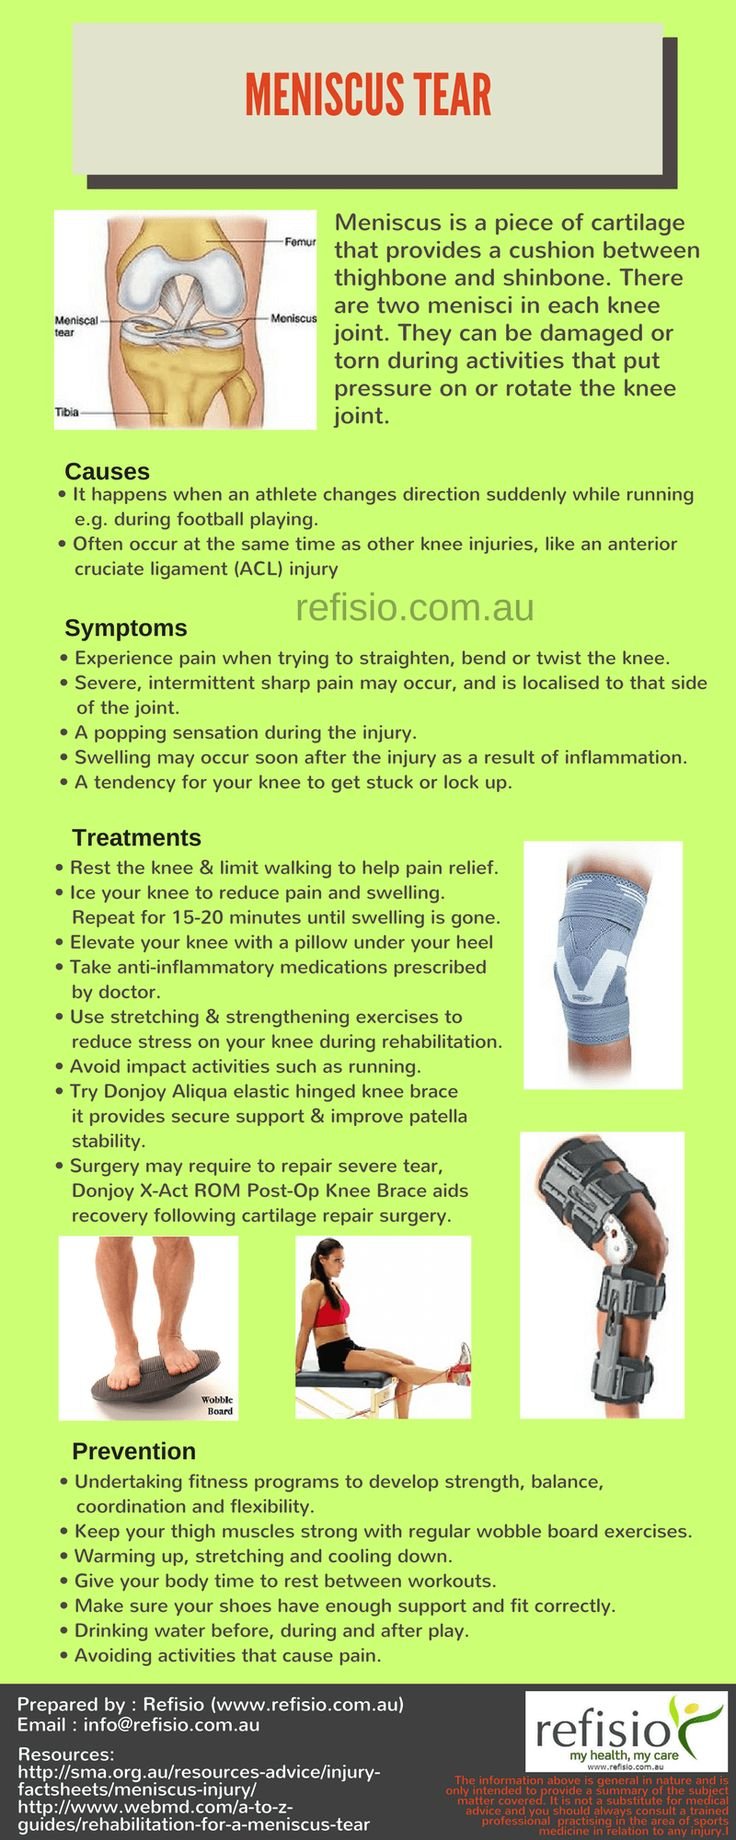 Meniscus Tear - Causes, Symptoms, Treatments & Prevention - Refisio